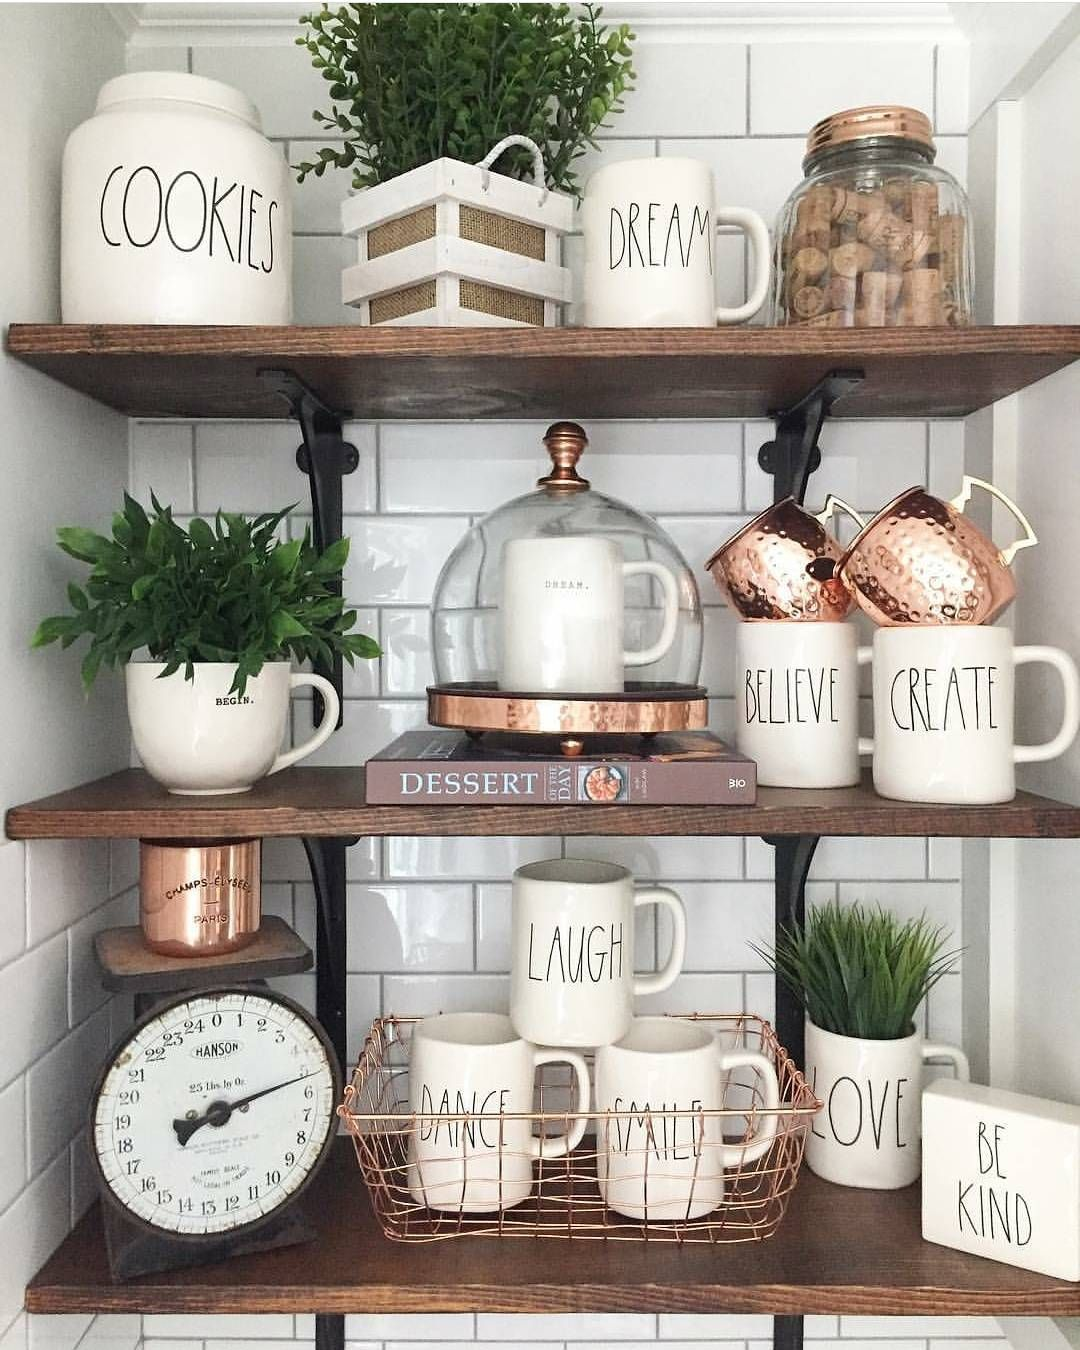 Kitchen Plant Shelf Decorating Ideas: Mixed Copper Collection, Plants & Eye-catching Kitchen